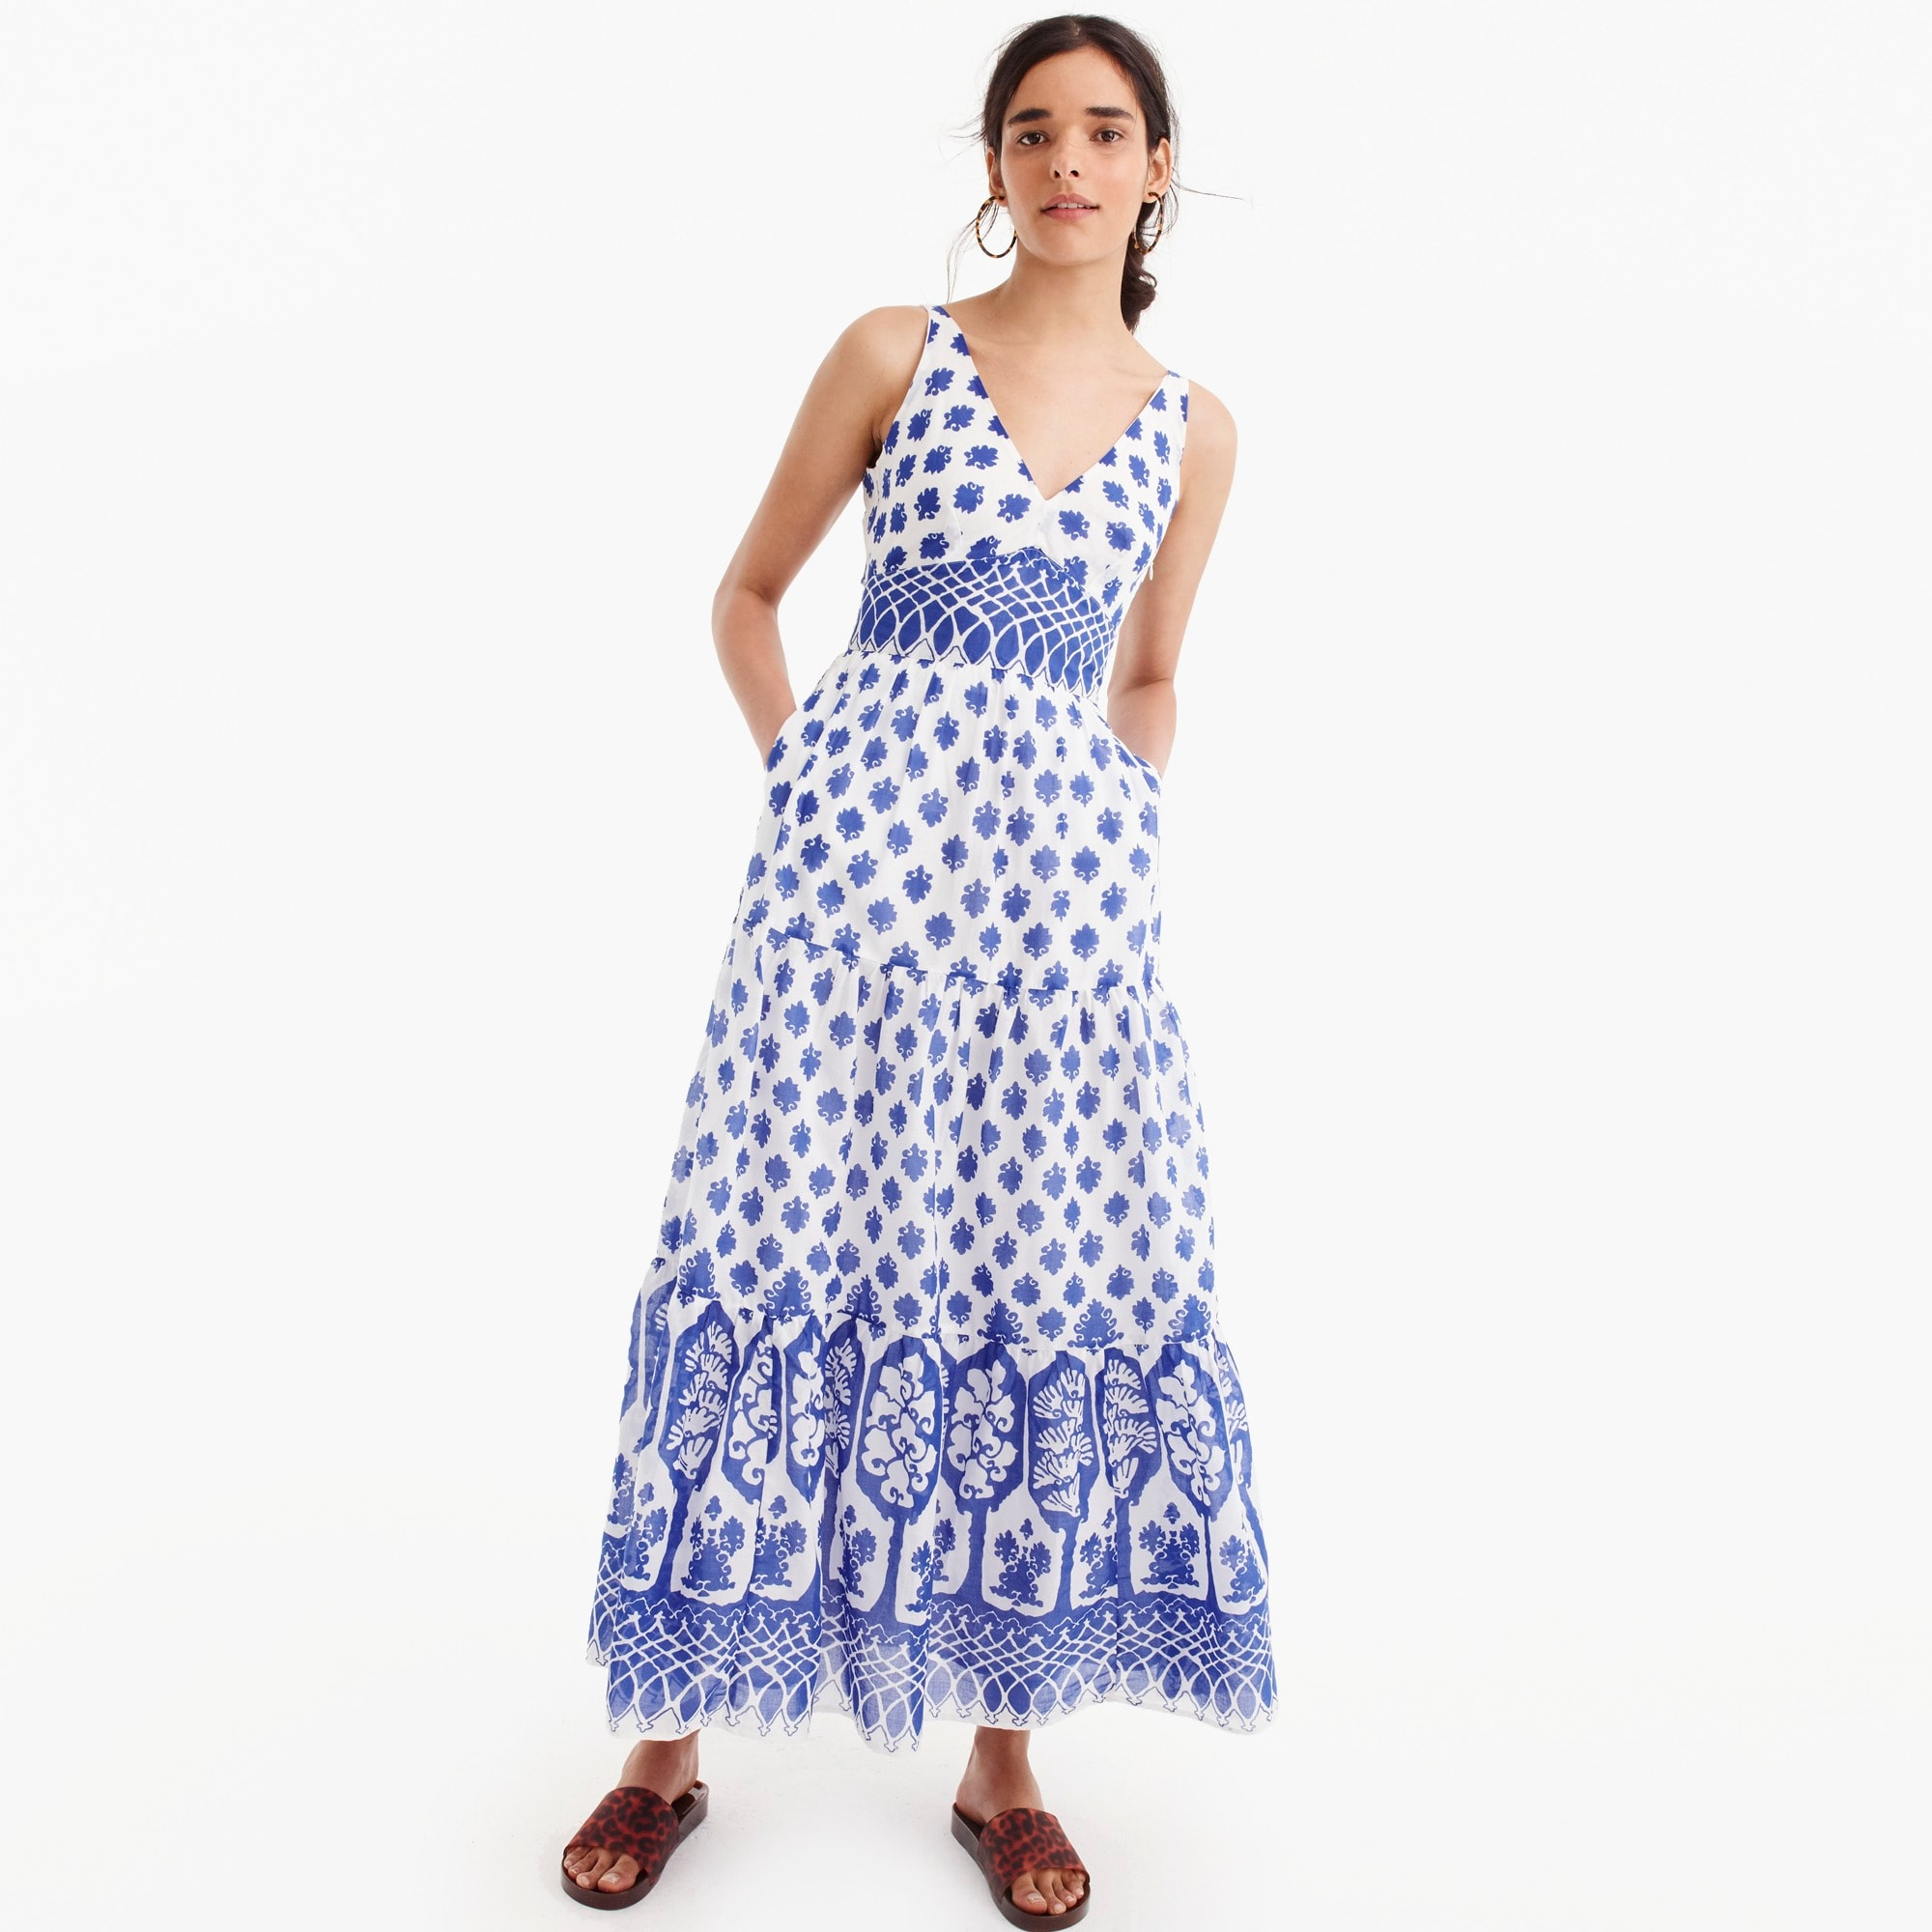 V-neck maxi dress in block print women dresses c